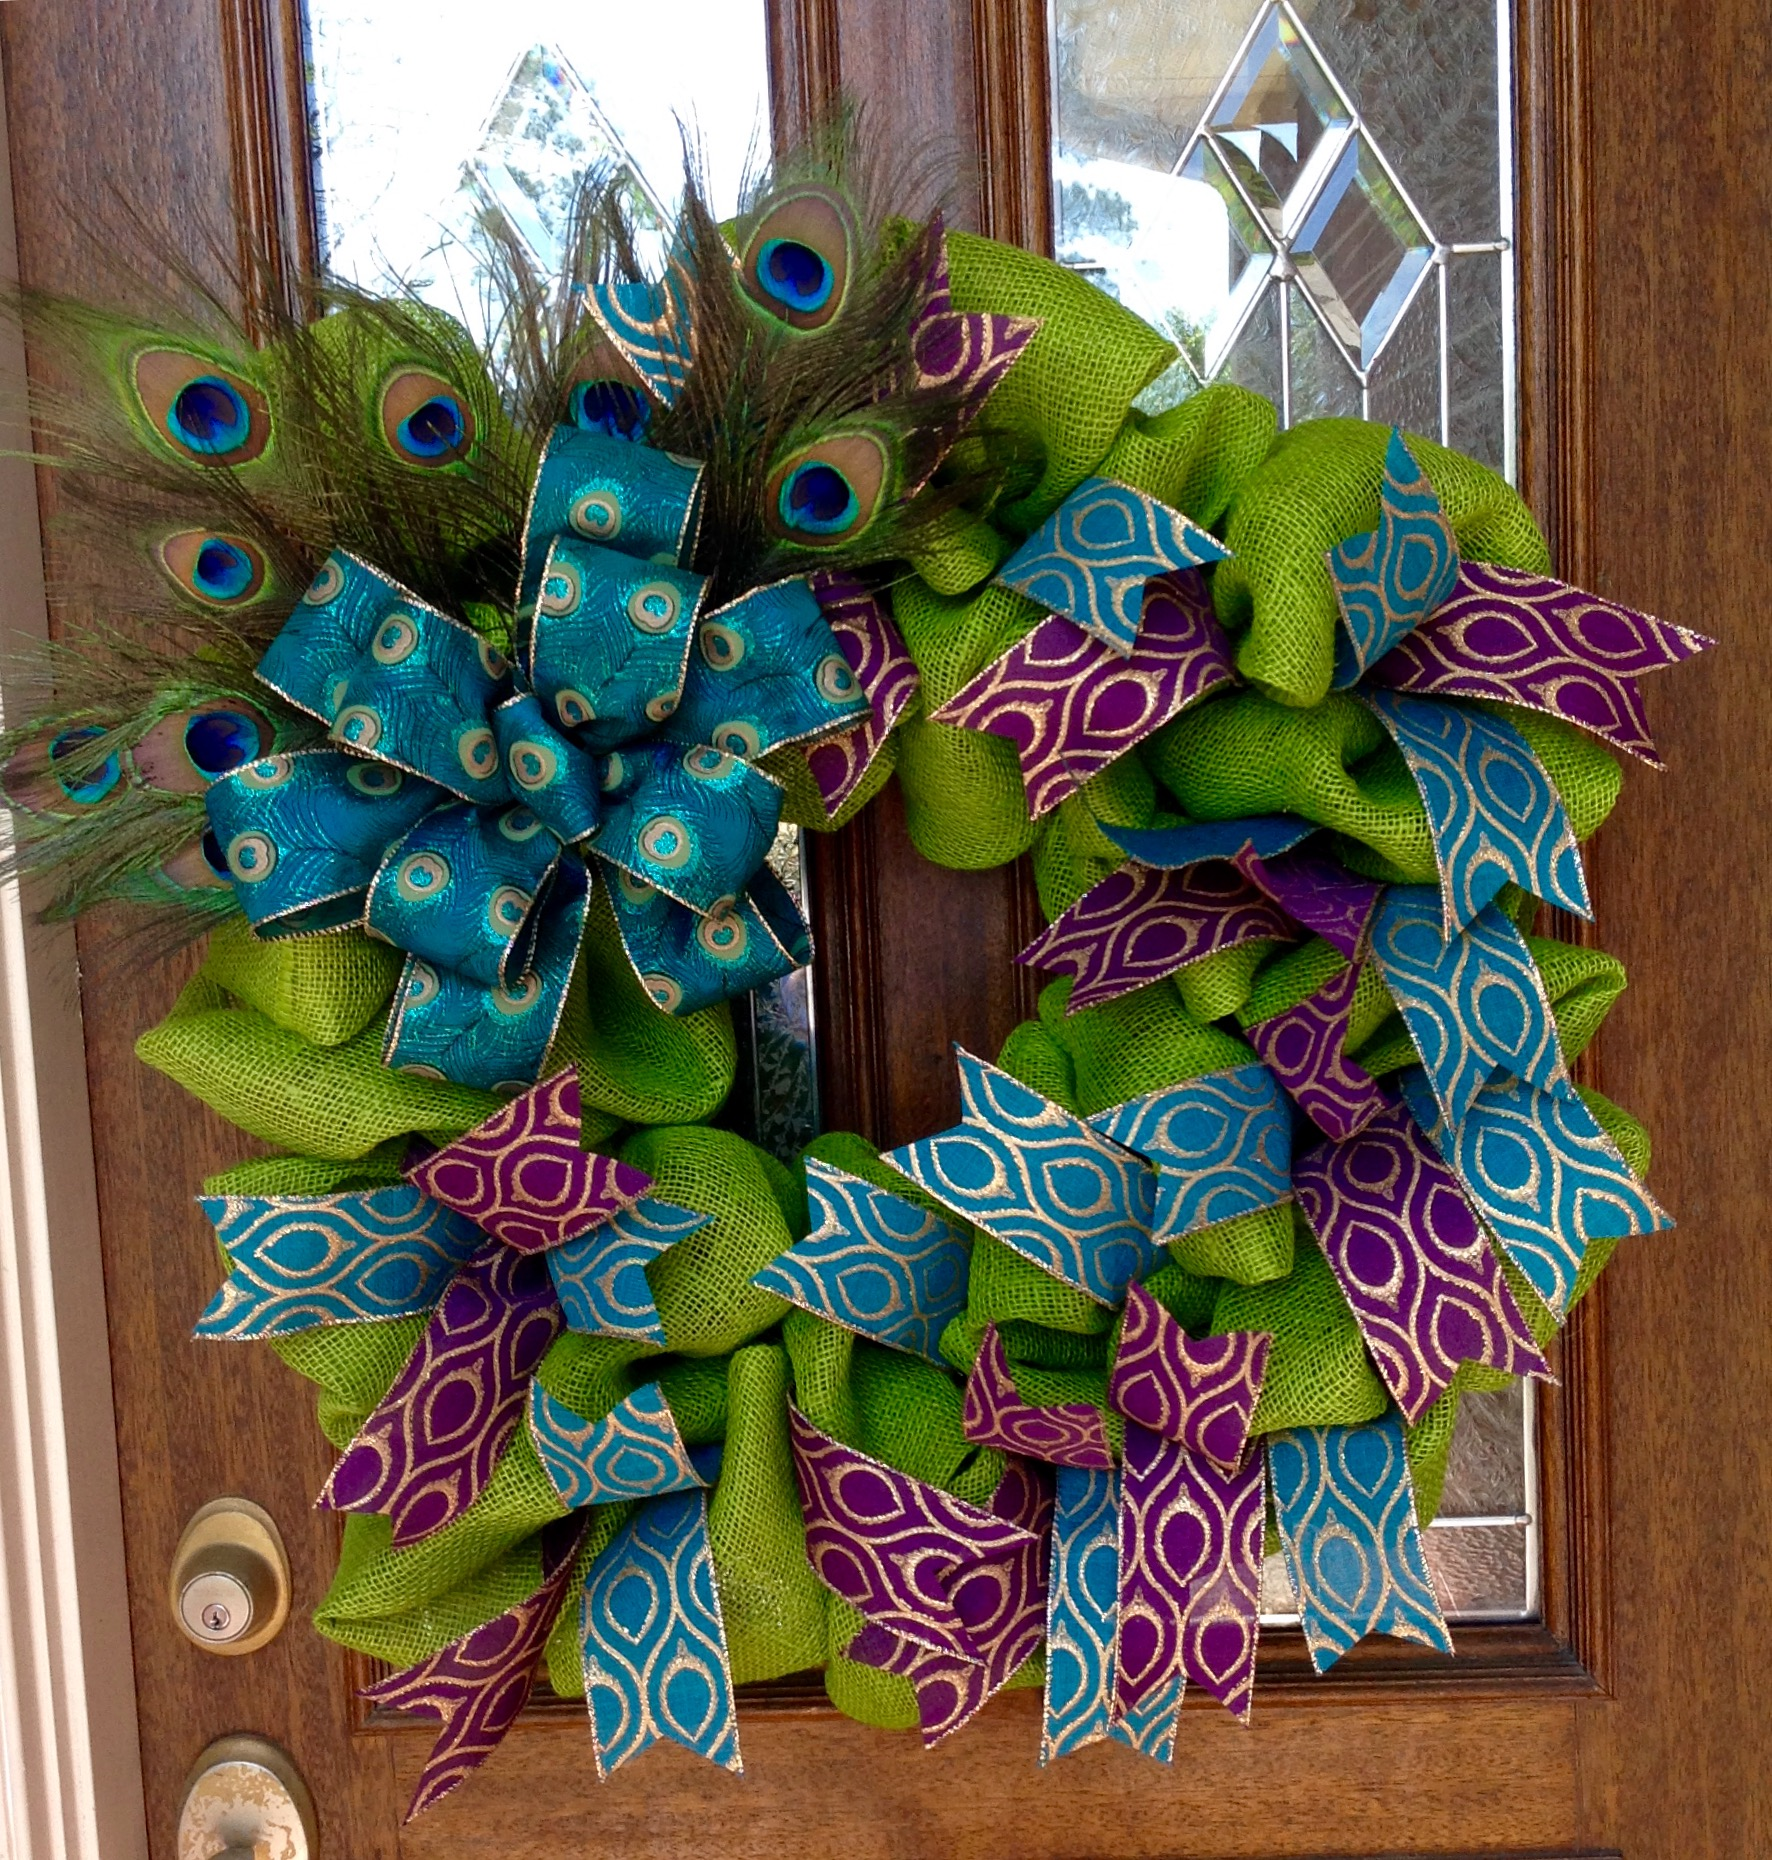 Green Burlap Wreath with Peacock Accents by Whimsical Wreaths by Amy